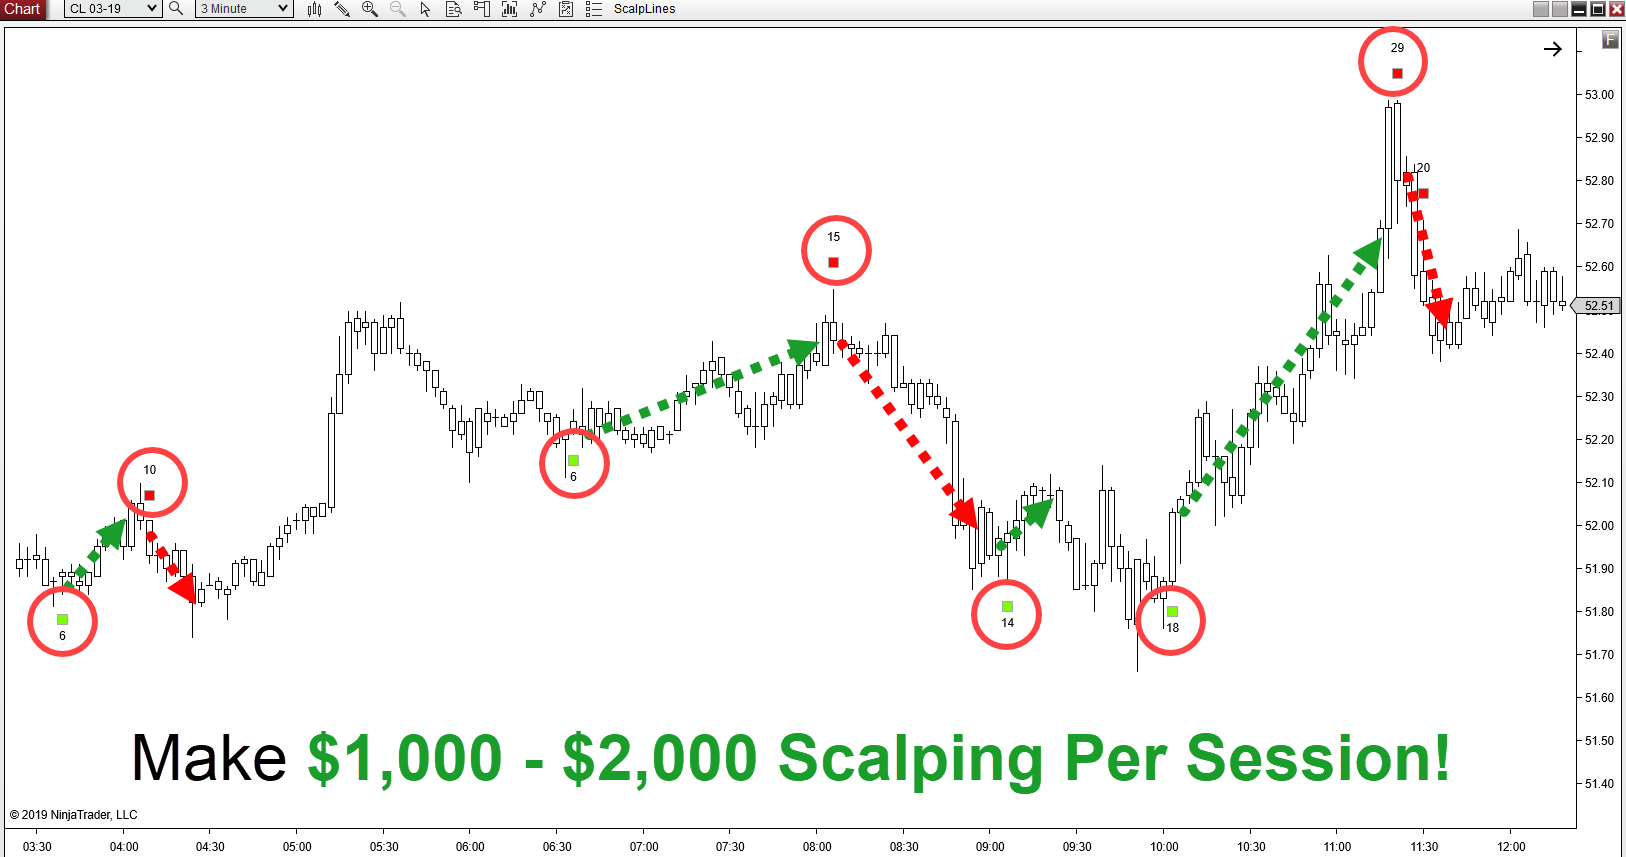 Make $1,000 to $2,000 per scalping session with VSA indicators that do the calculating for you.